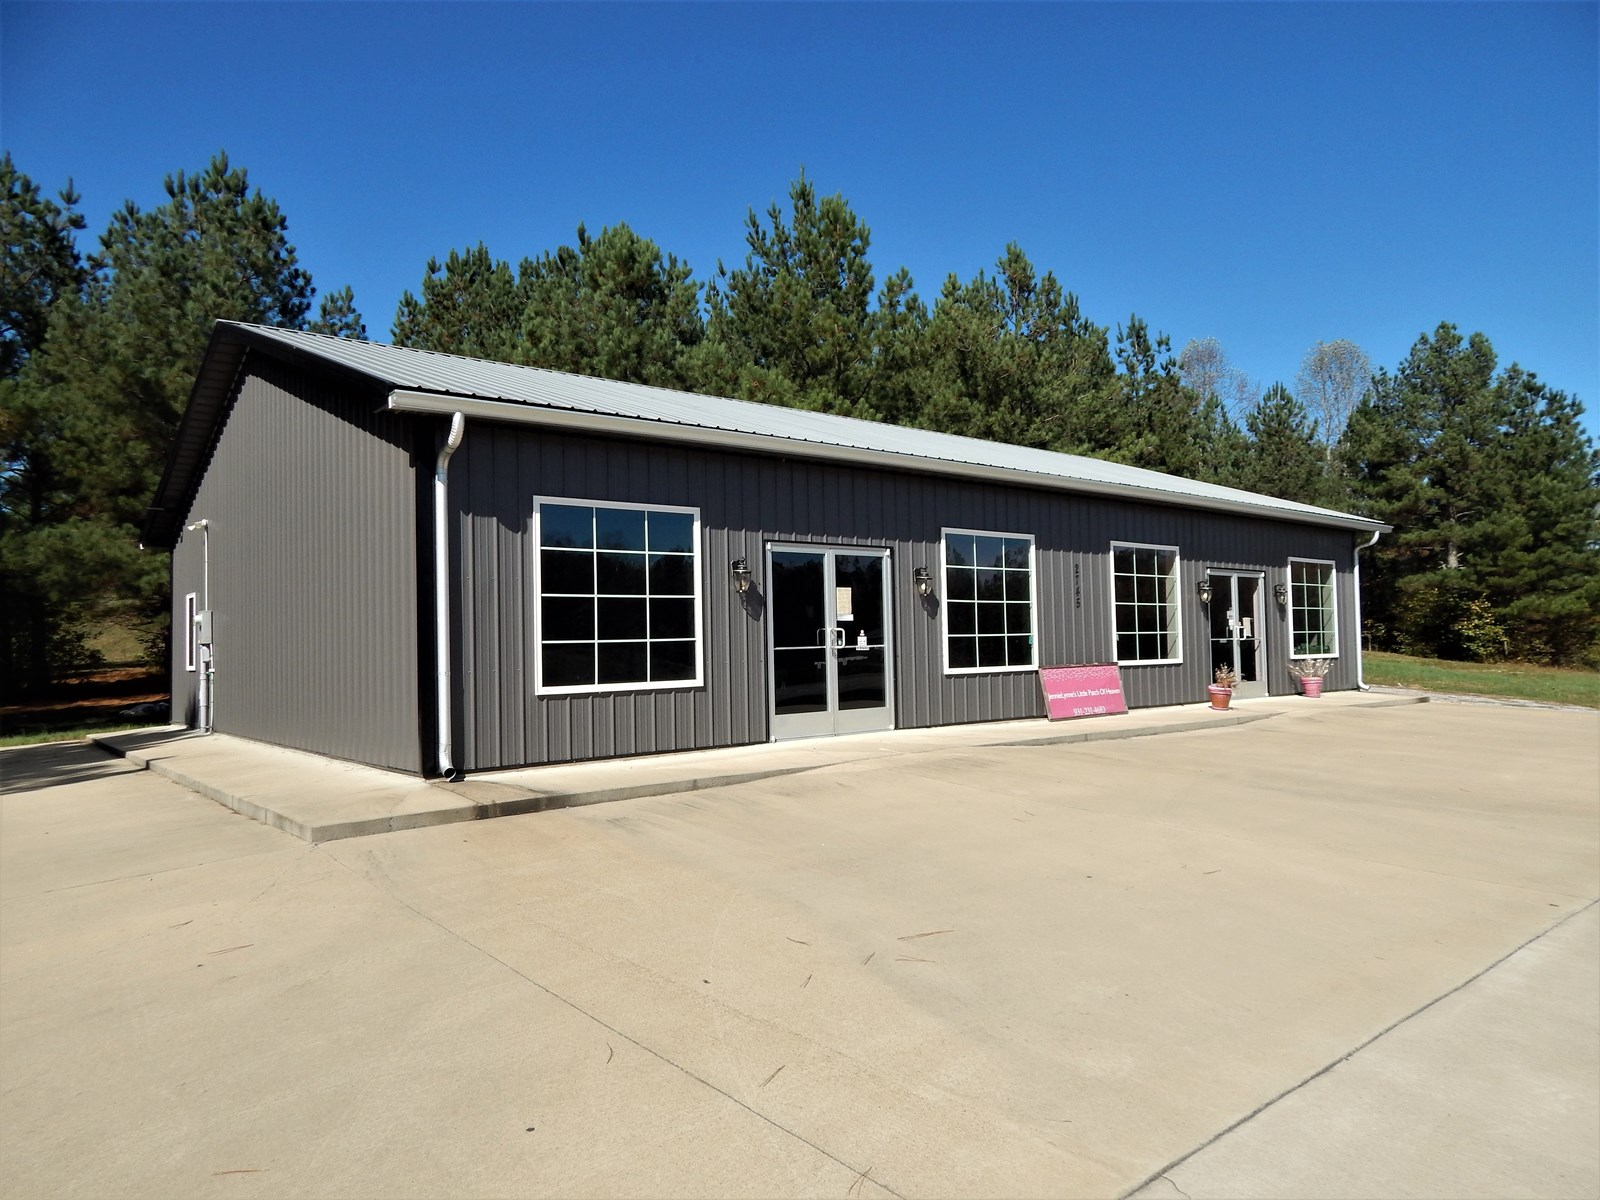 2400 SQ FT COMMERCIAL OR RESIDENTIAL BUILDING ON 7 ACRES!